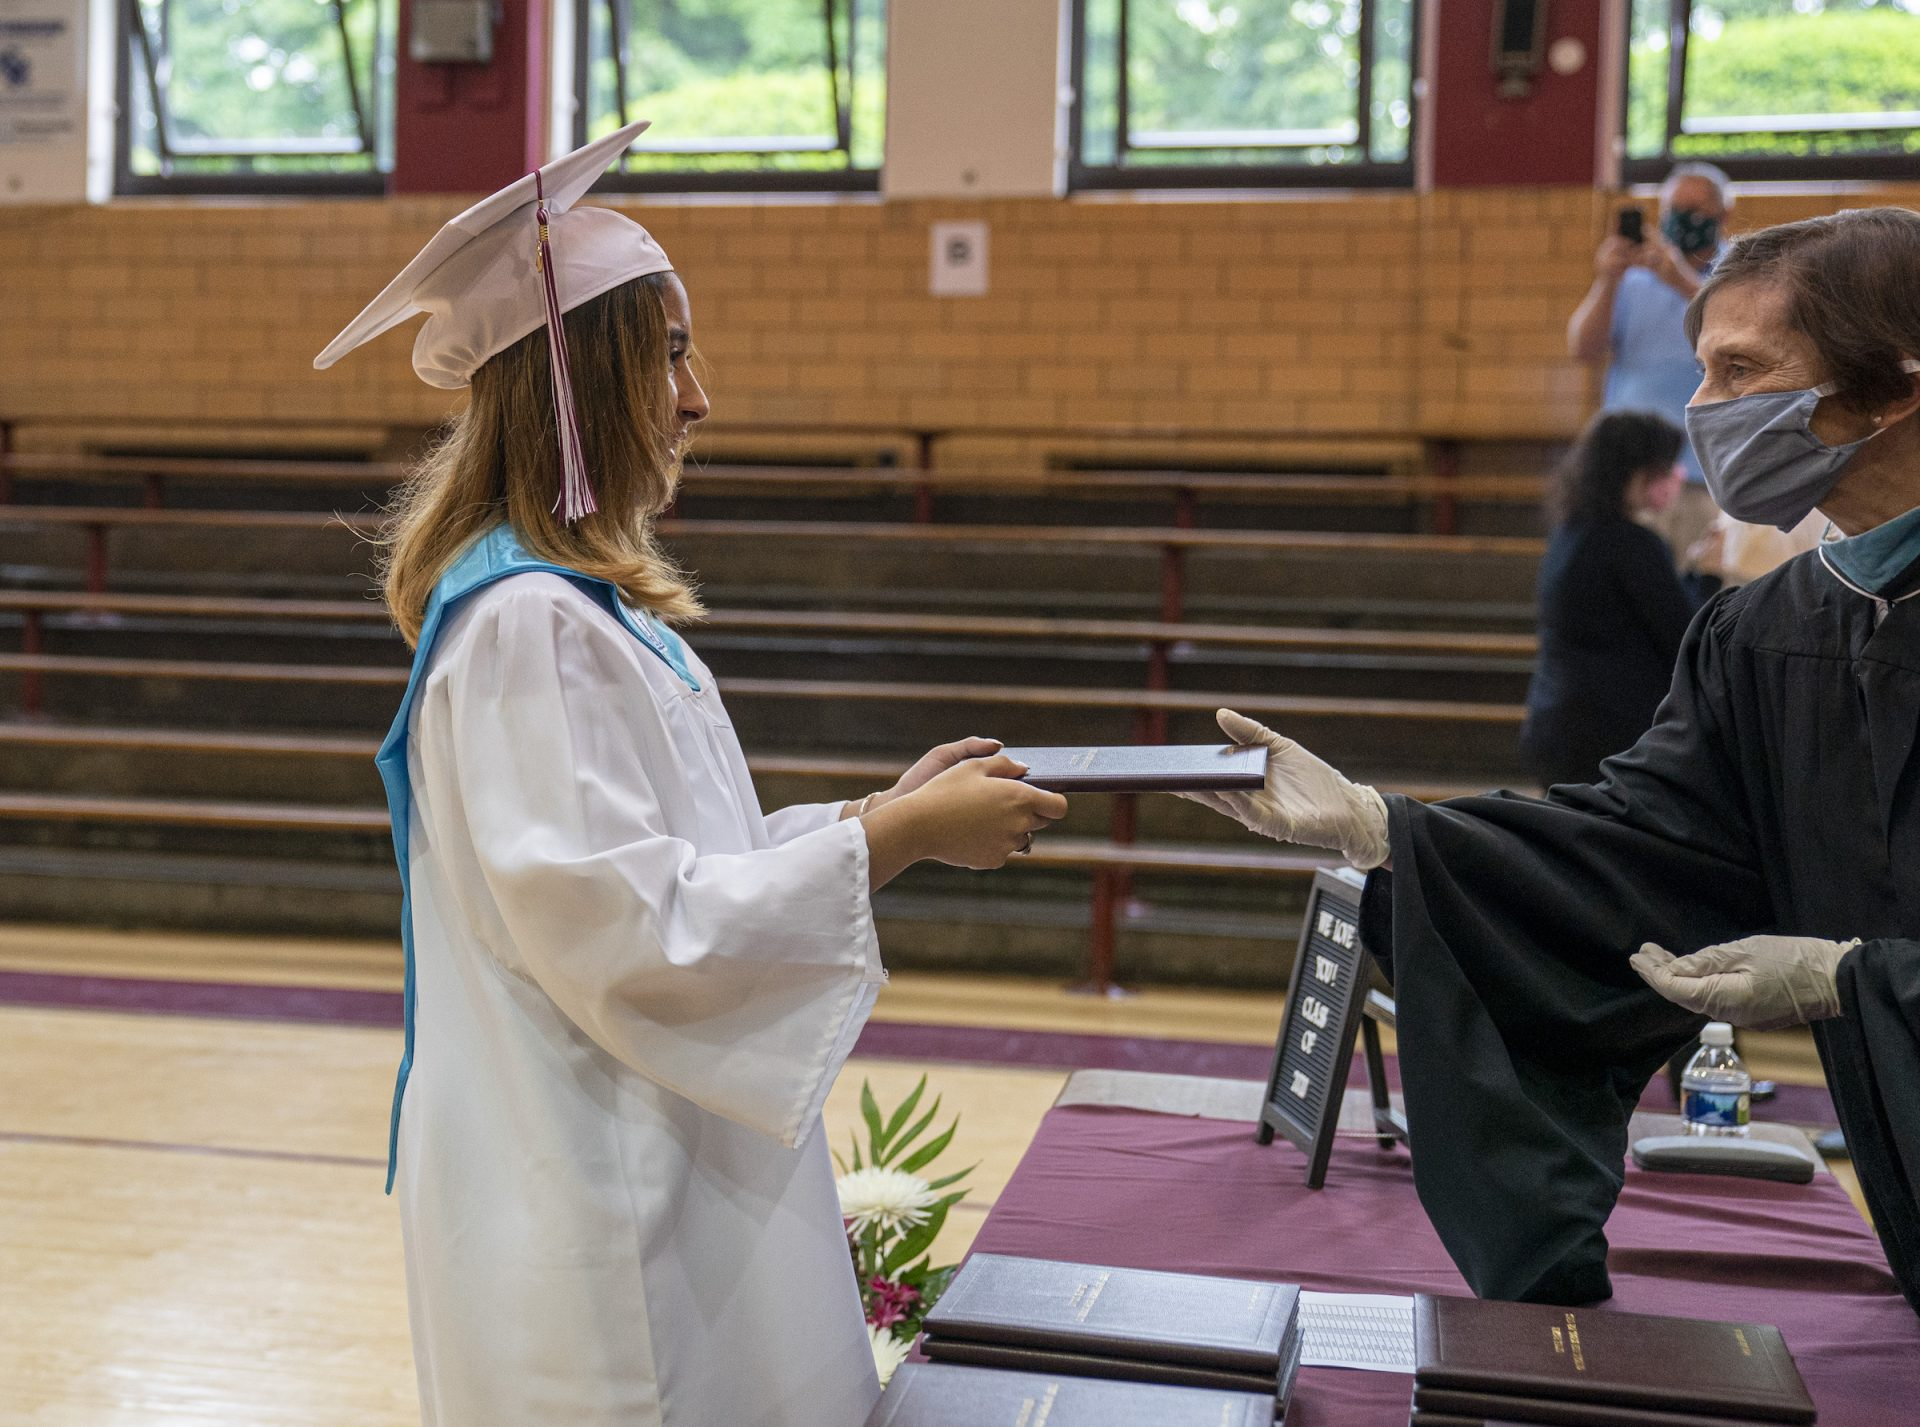 Ashley receives her diploma on graduation day at Little Flower Catholic School for Girls in Hunting Park.